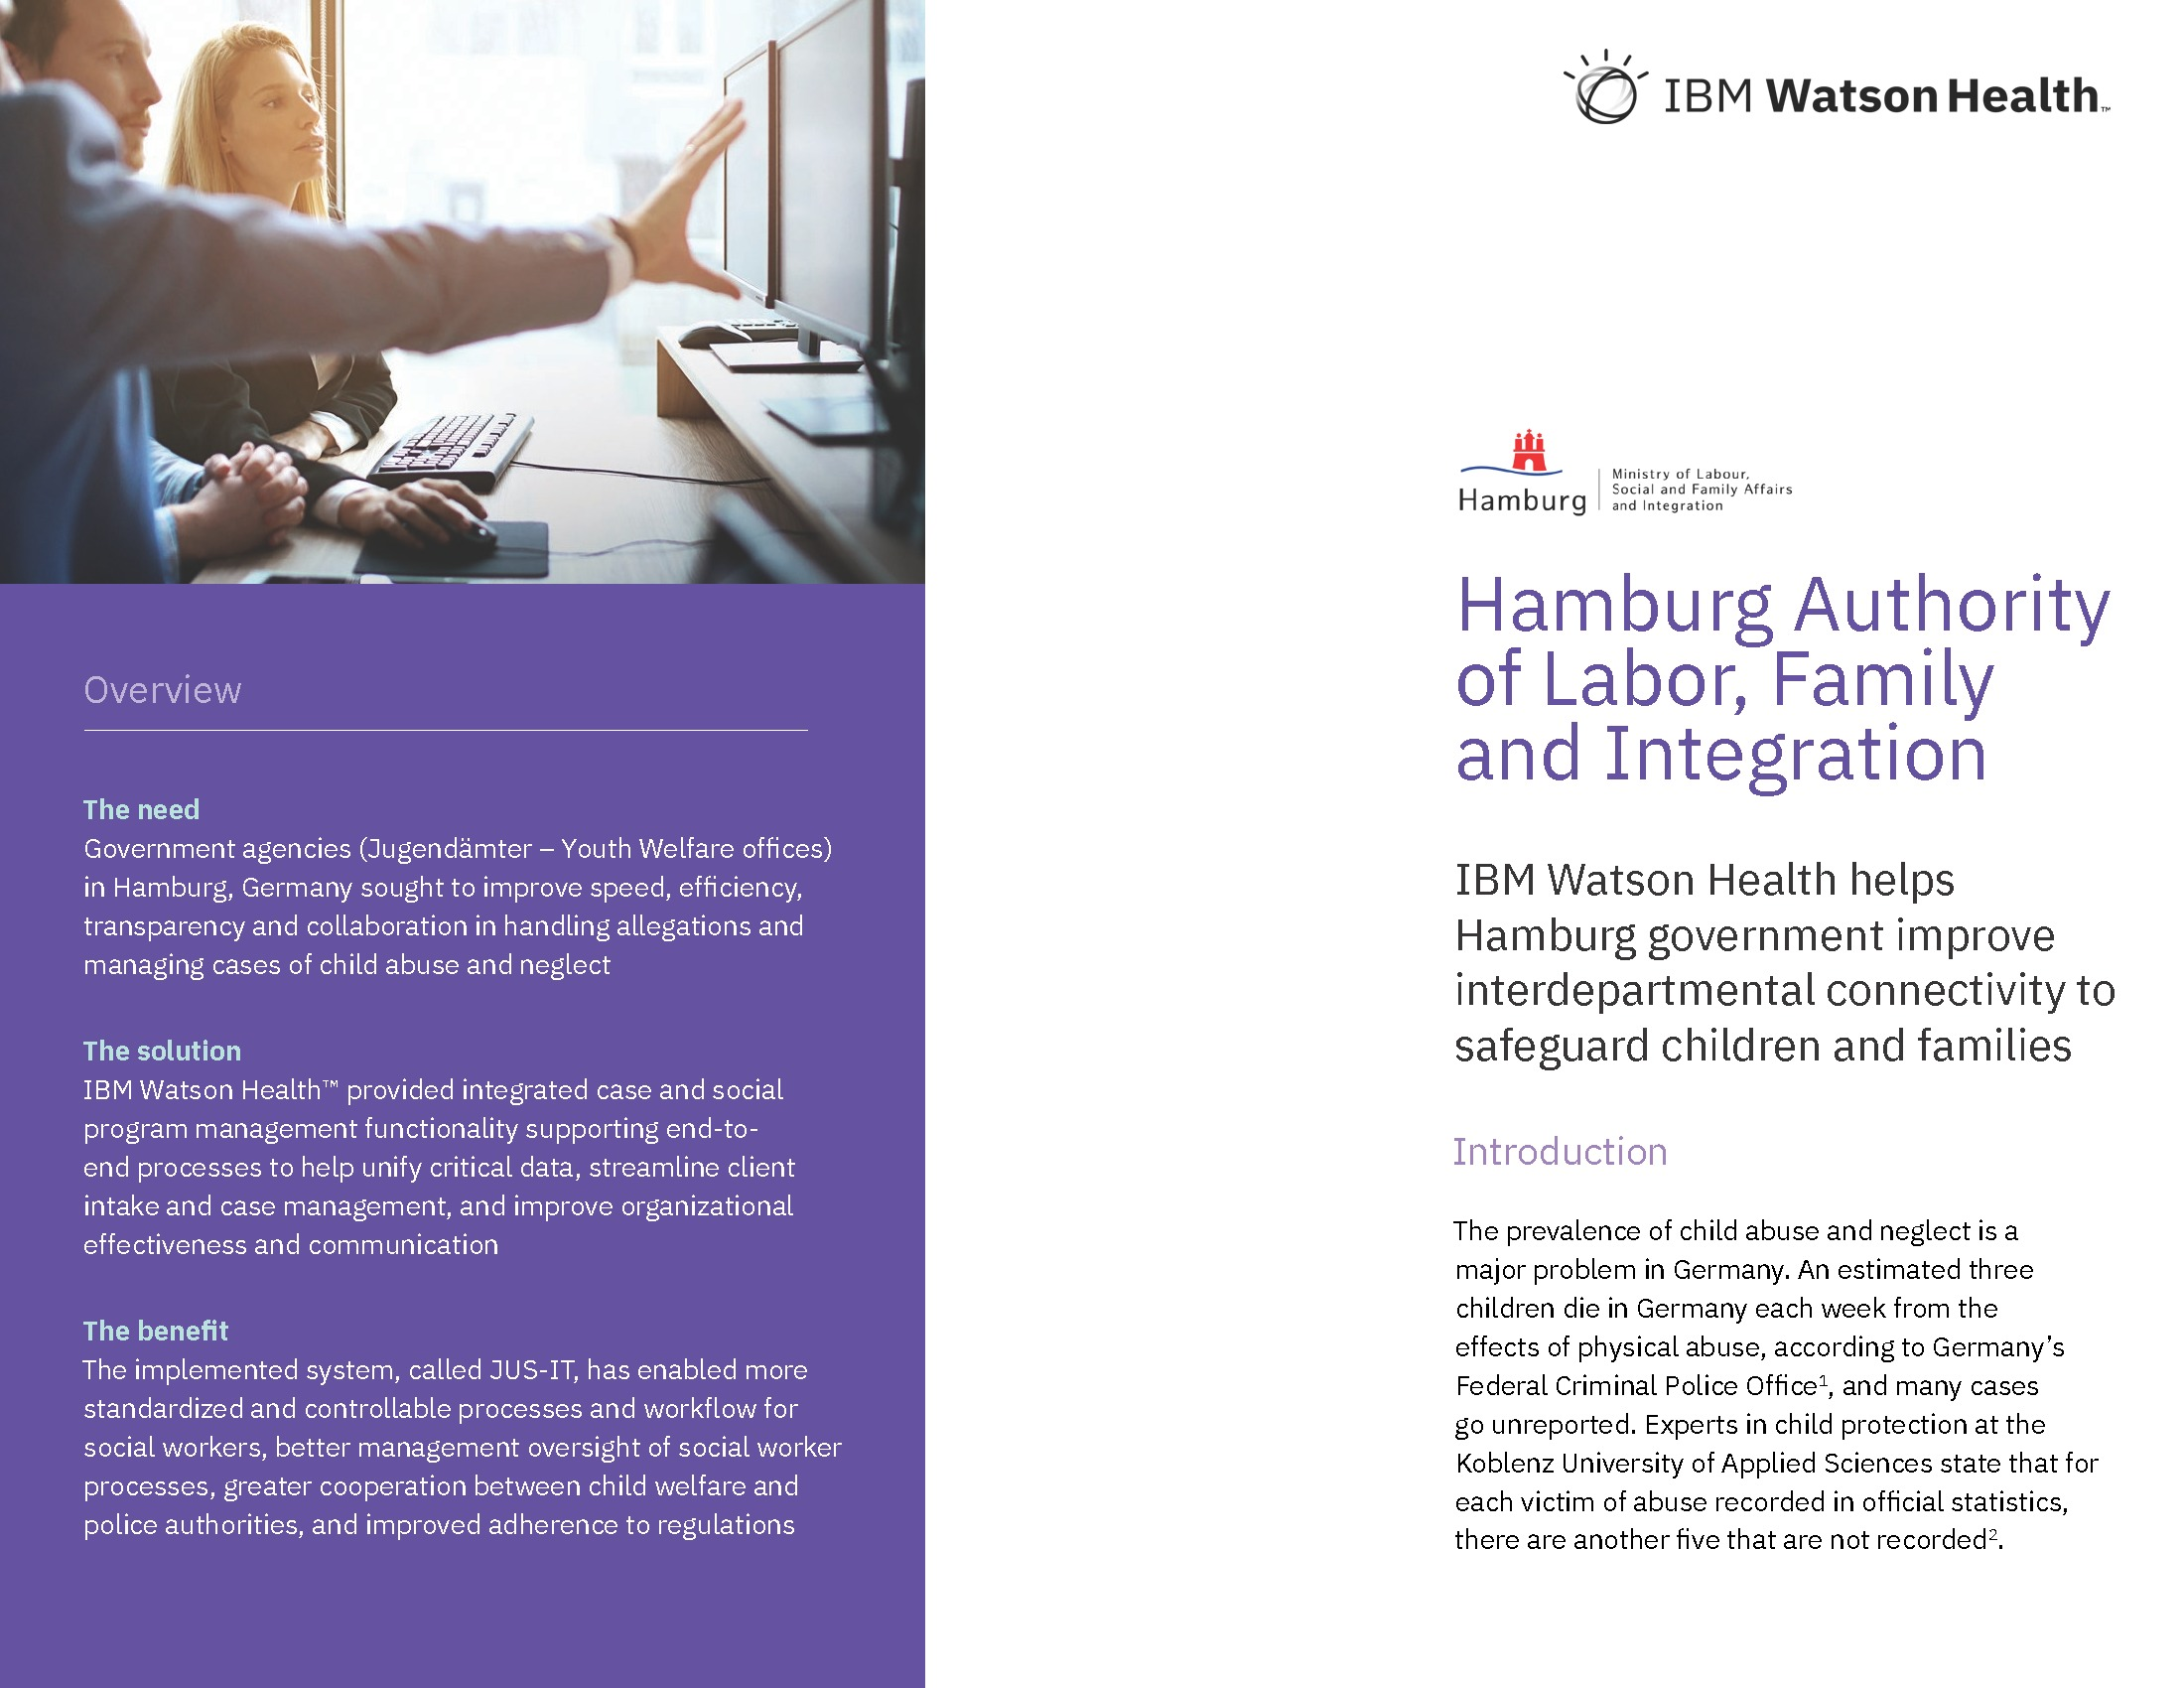 GOV - IBM - Watson Health - 2019 Q2 - Hamburg Authority of Labor